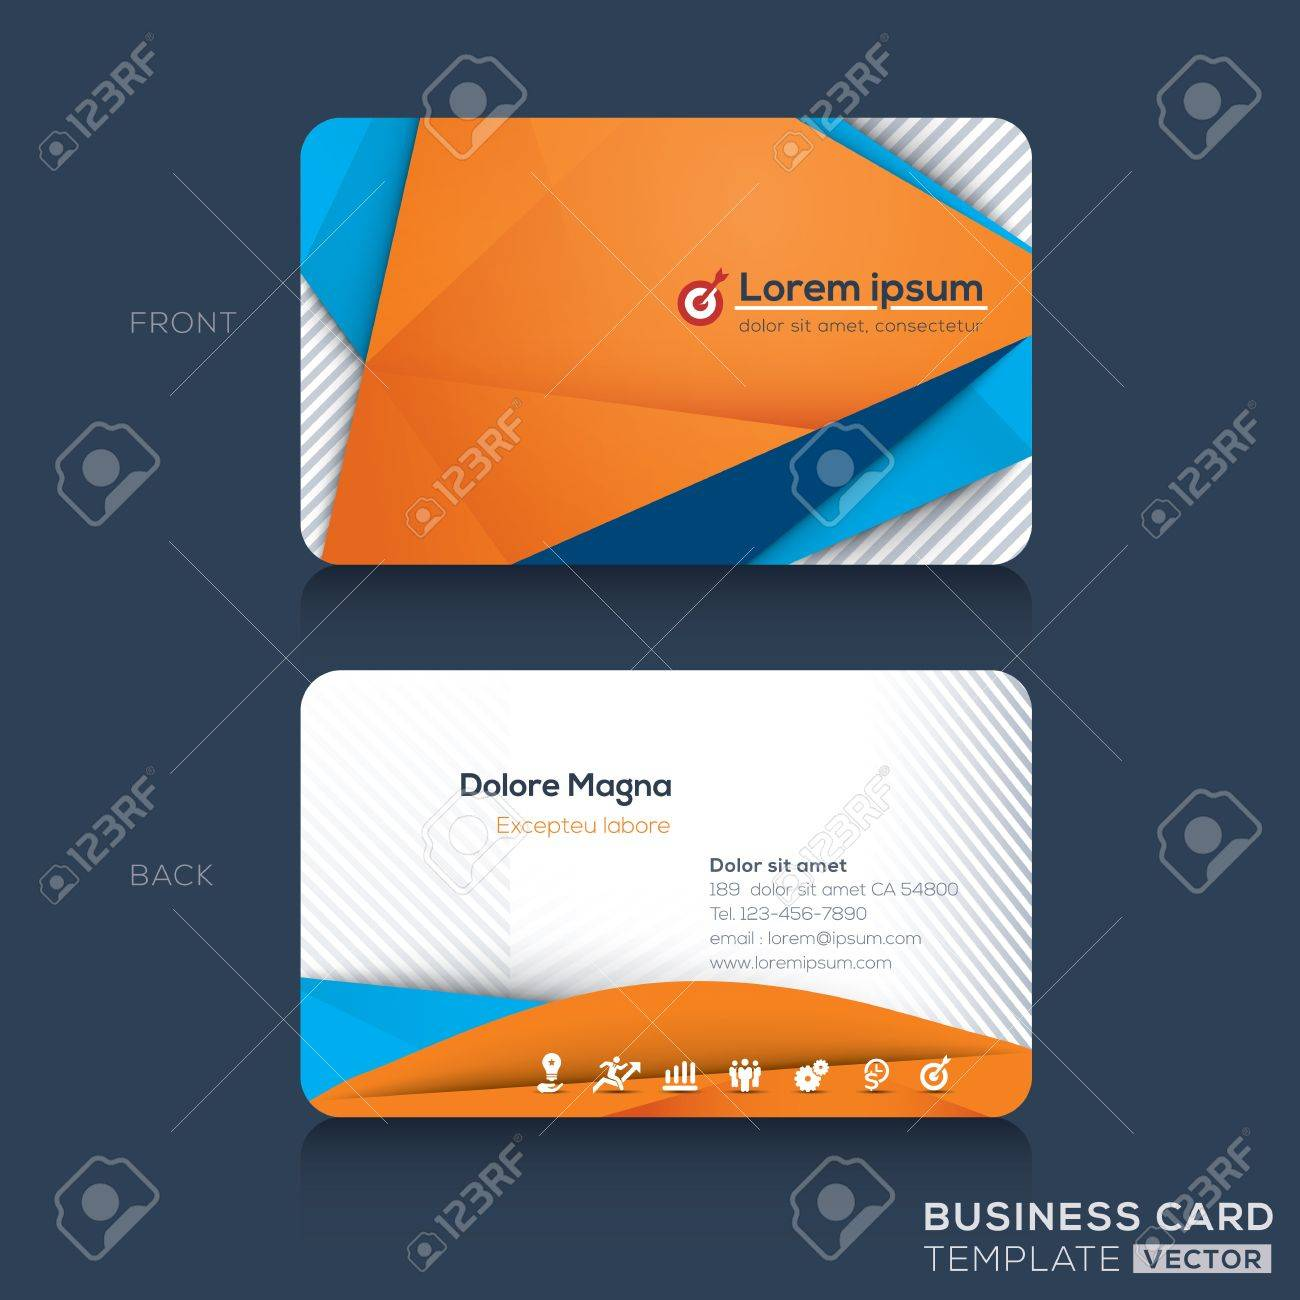 Business Cards Design Template Royalty Free Cliparts Vectors And - Business cards examples templates